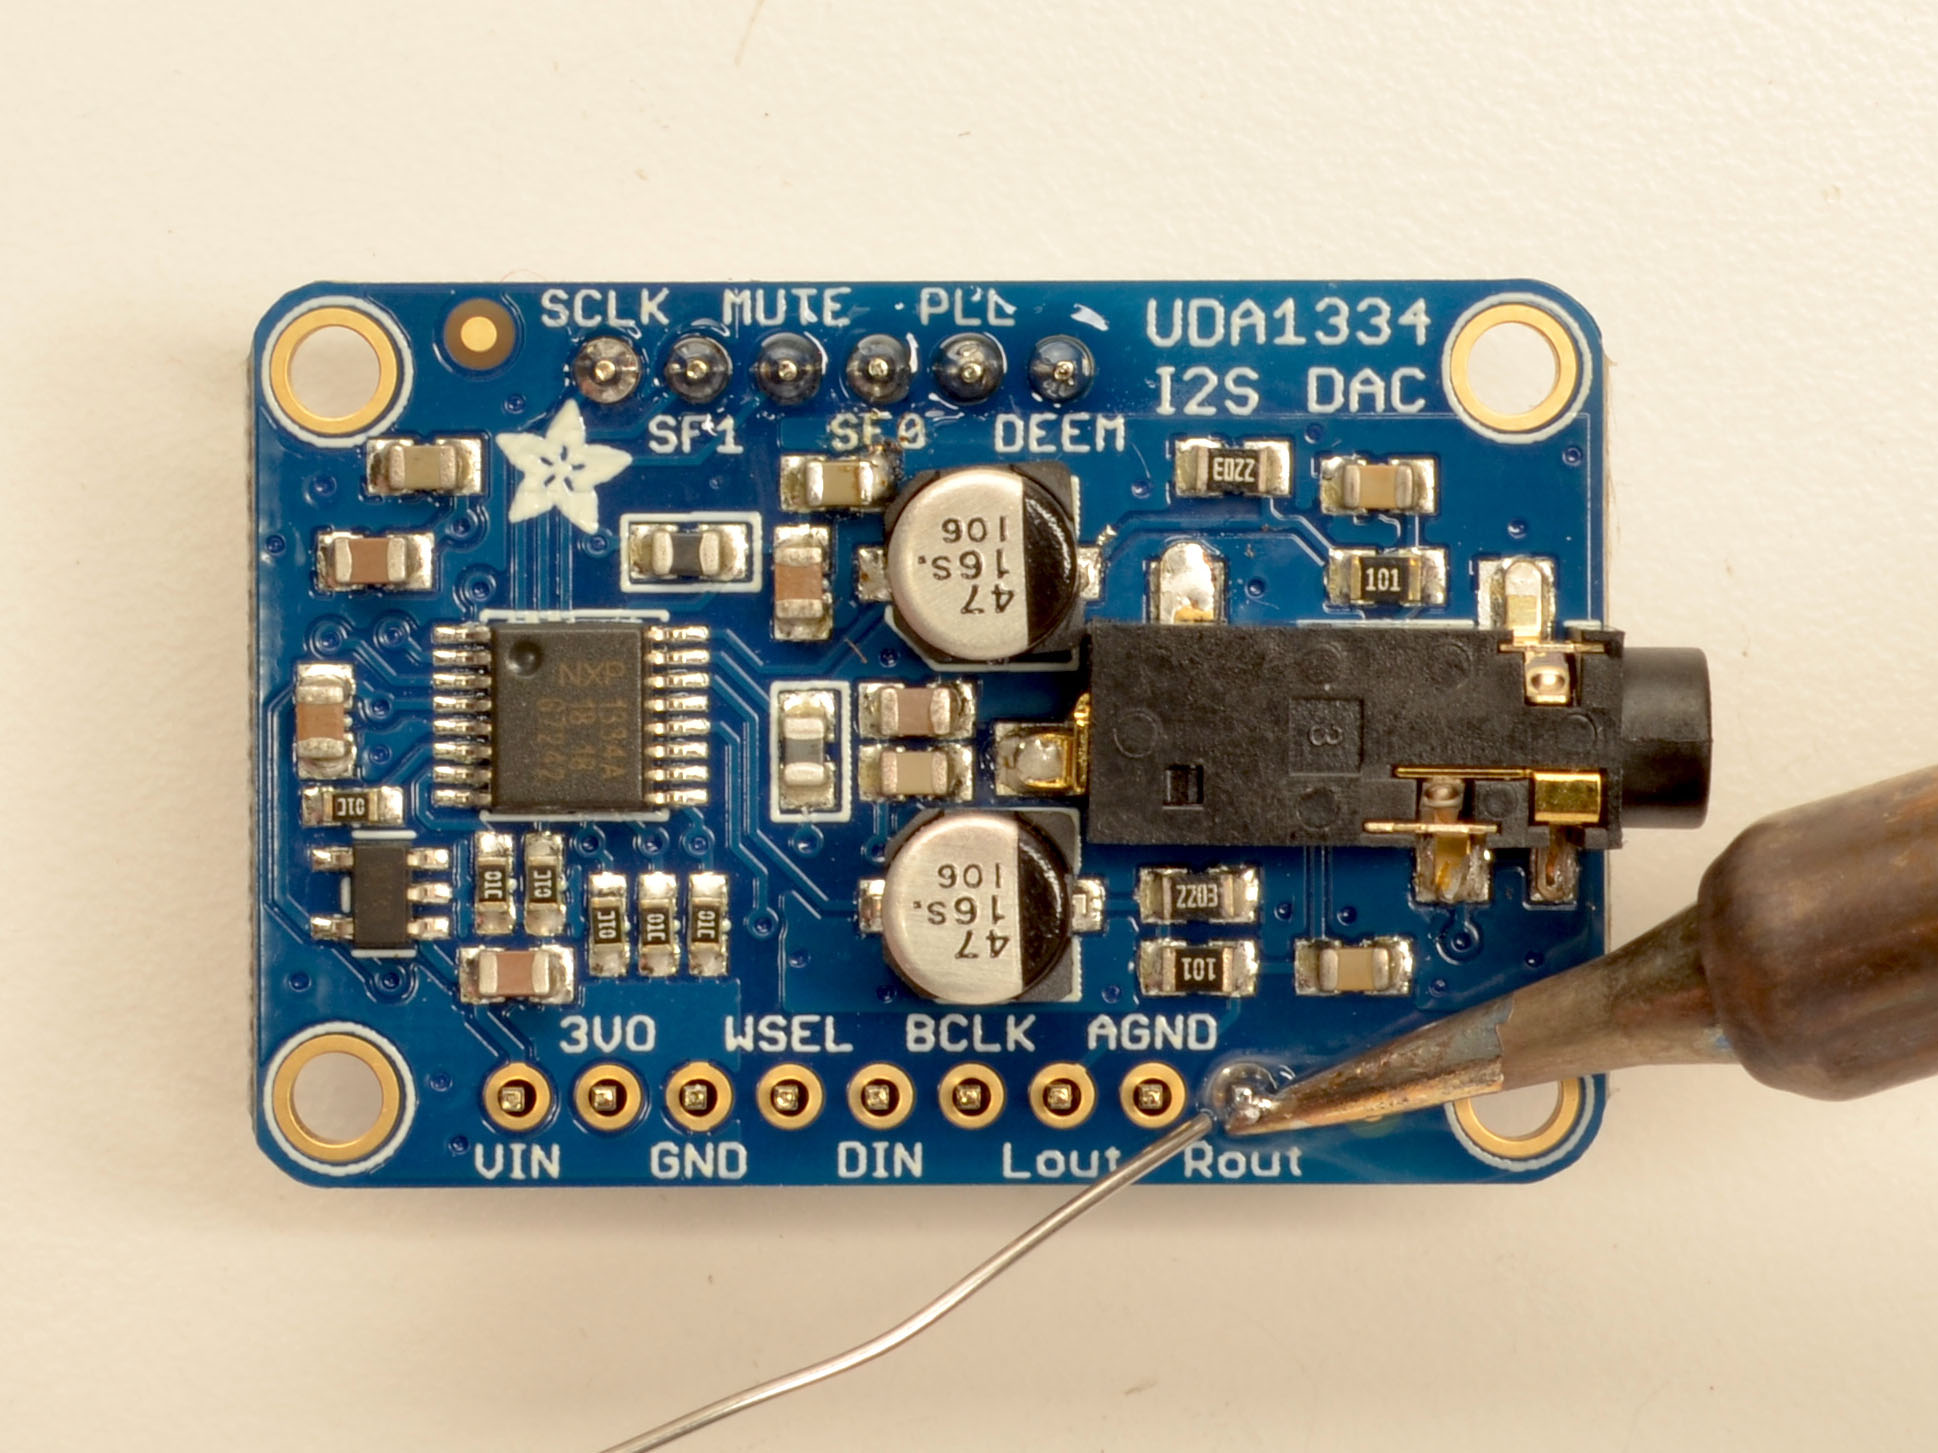 adafruit_products_DSC_3919.jpg